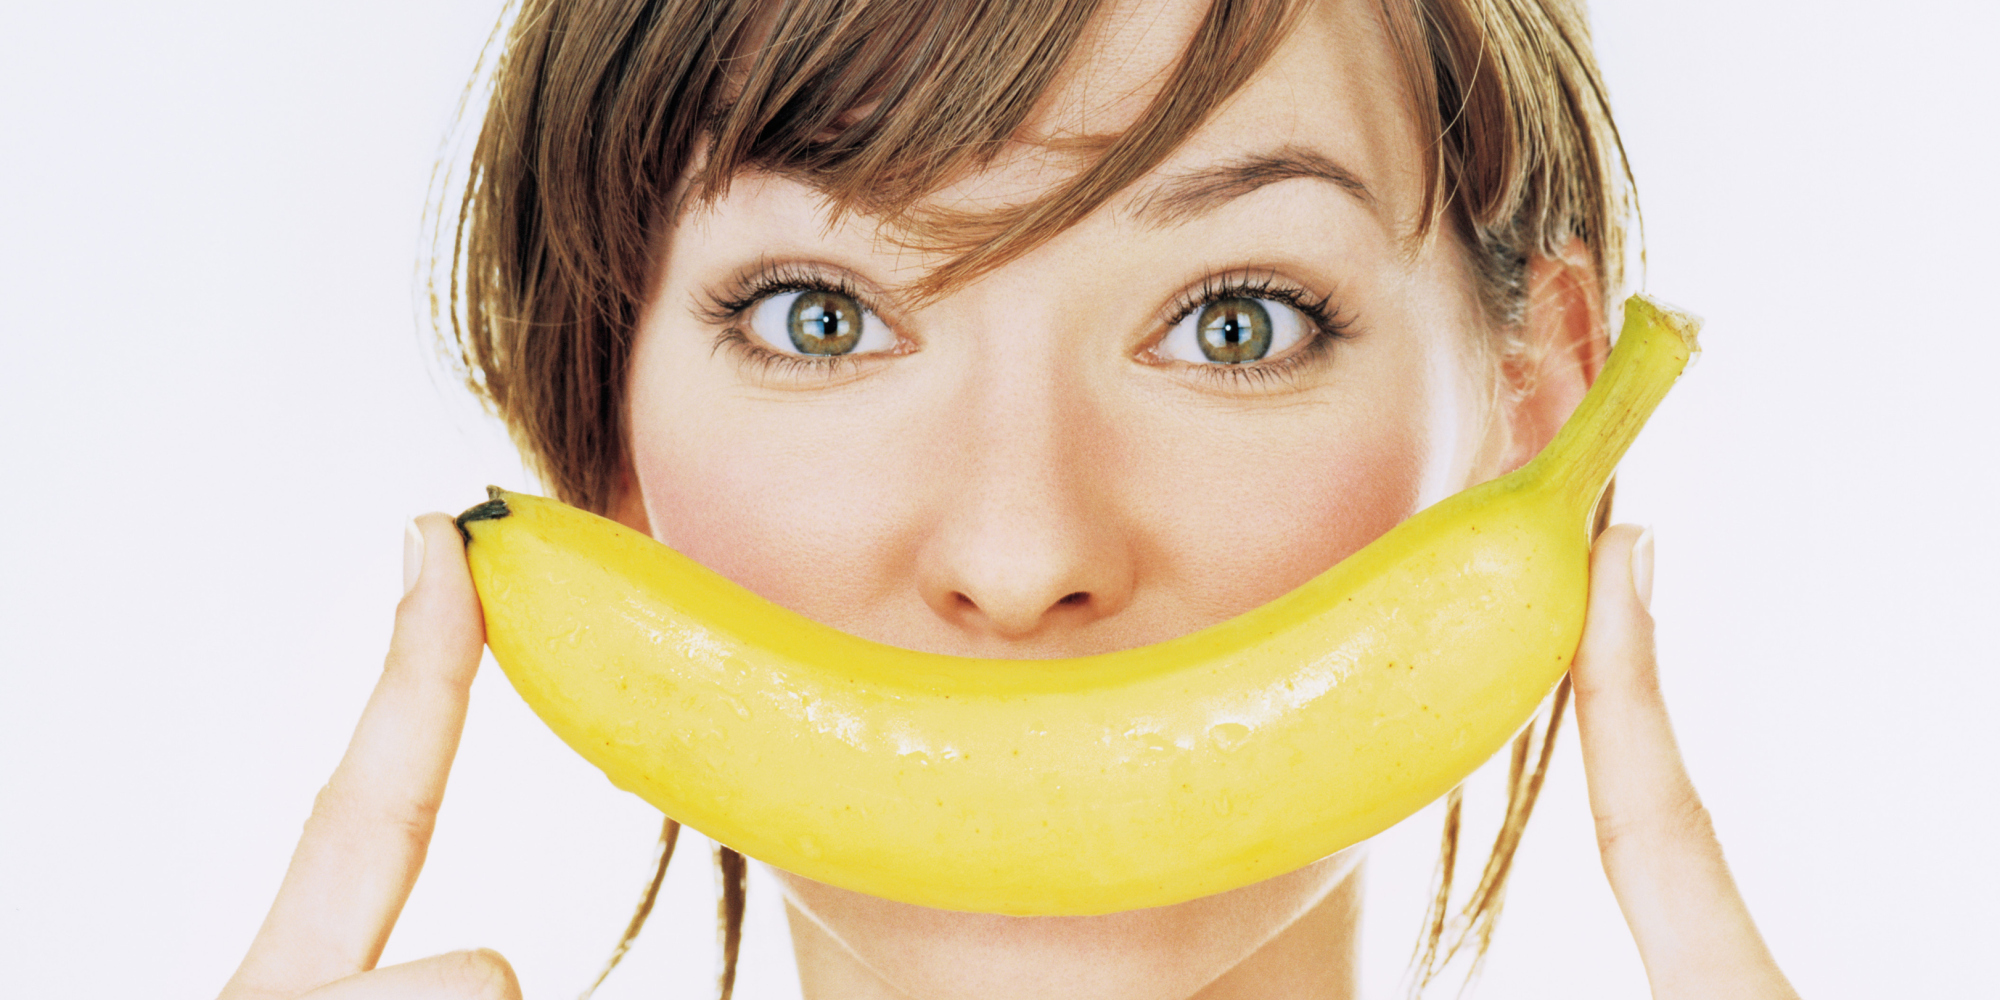 Young woman holding banana over mouth, portrait, close-up